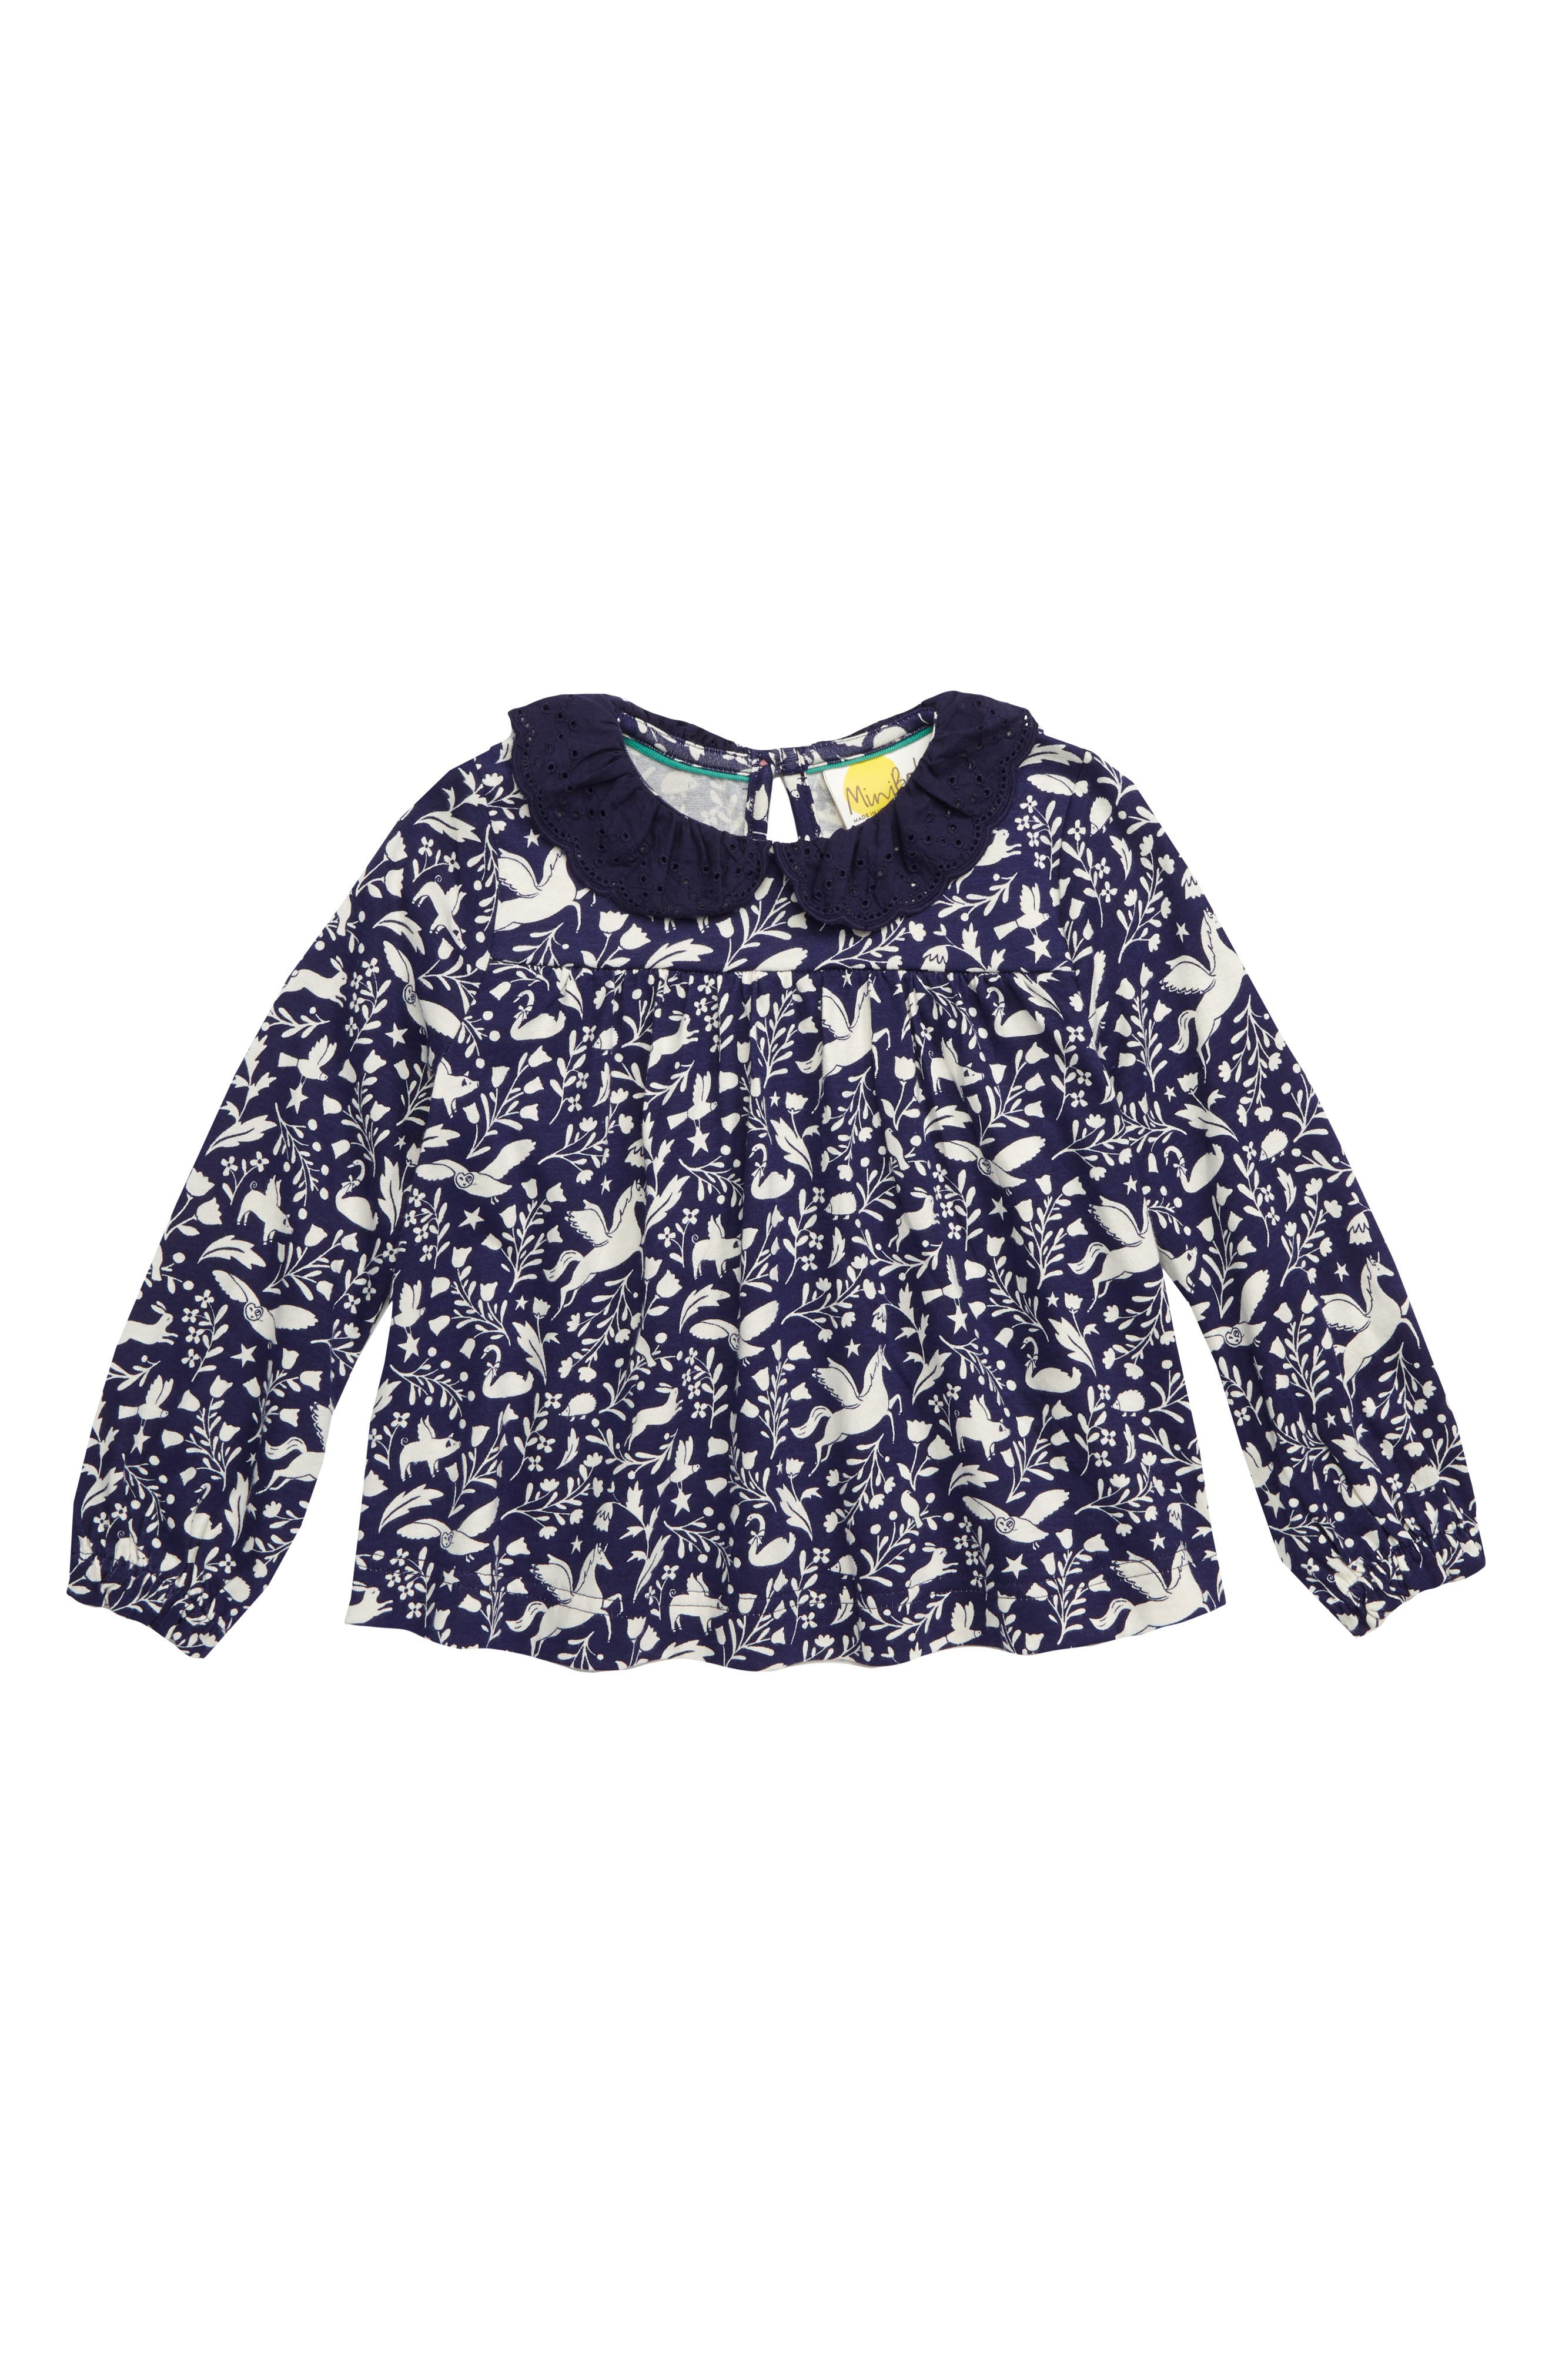 Broderie Collar Top,                             Main thumbnail 1, color,                             NAVY PRUSSIAN BLUE PEC PETS